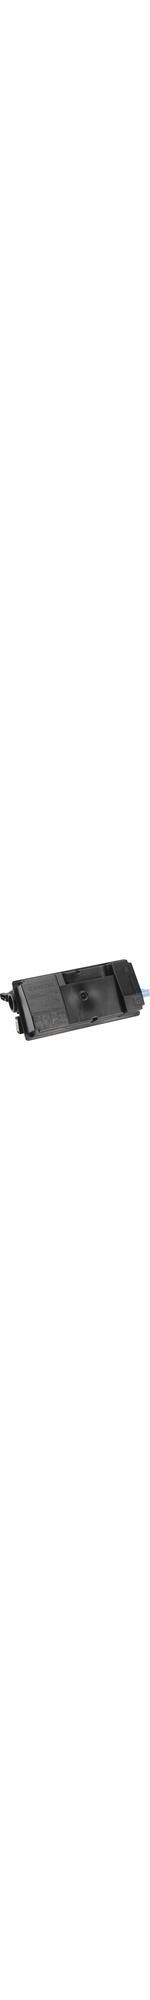 Kyocera TK-3130 Toner Cartridge - Black